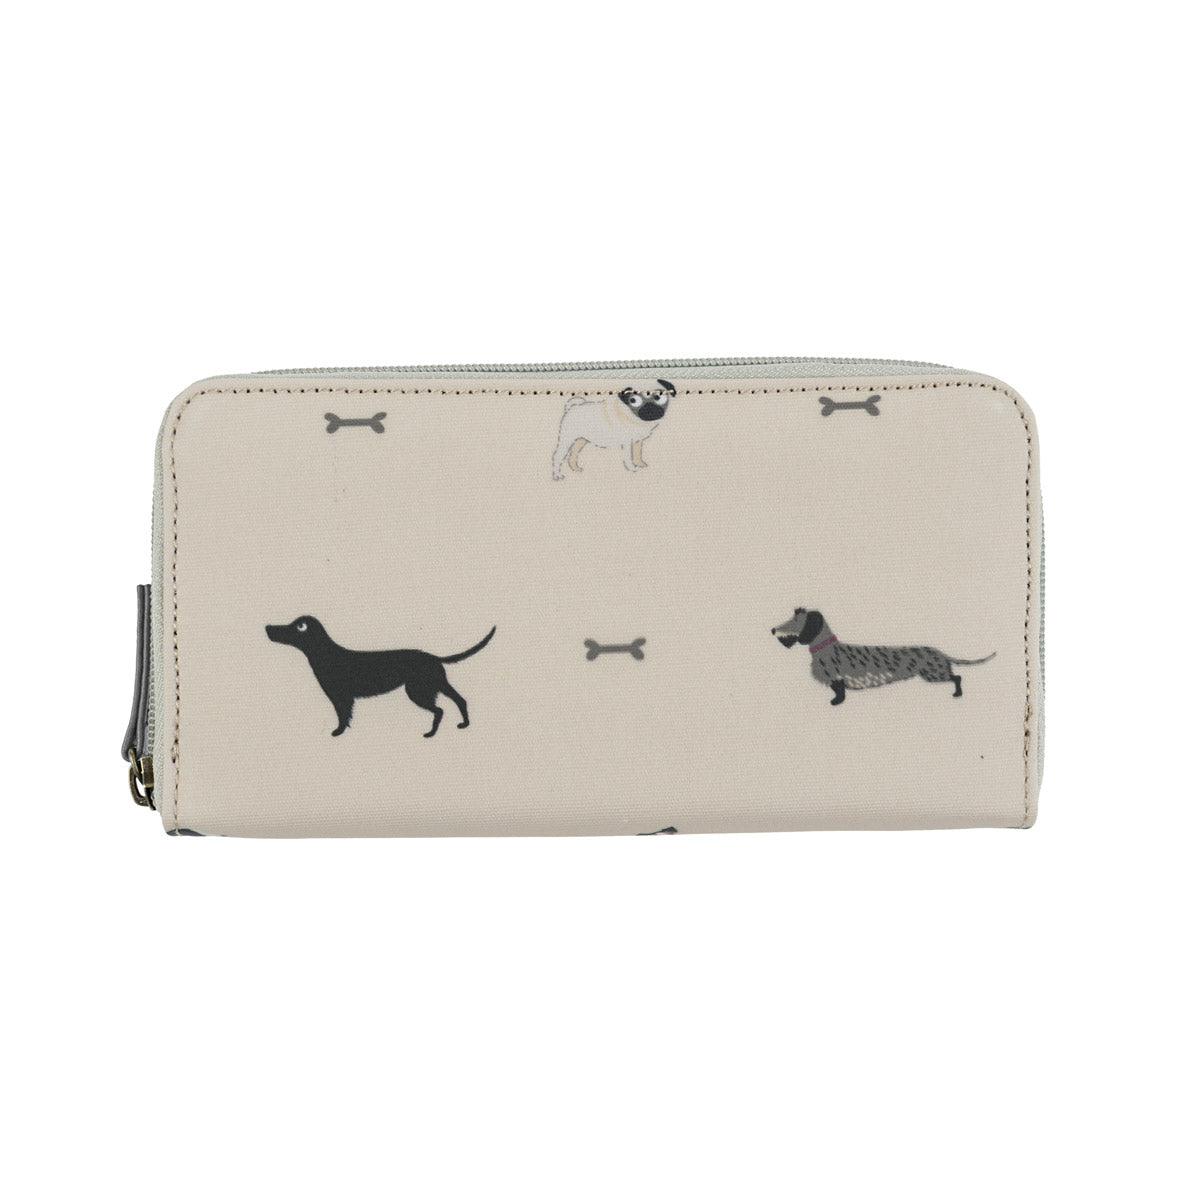 Woof Oilcloth Wallet